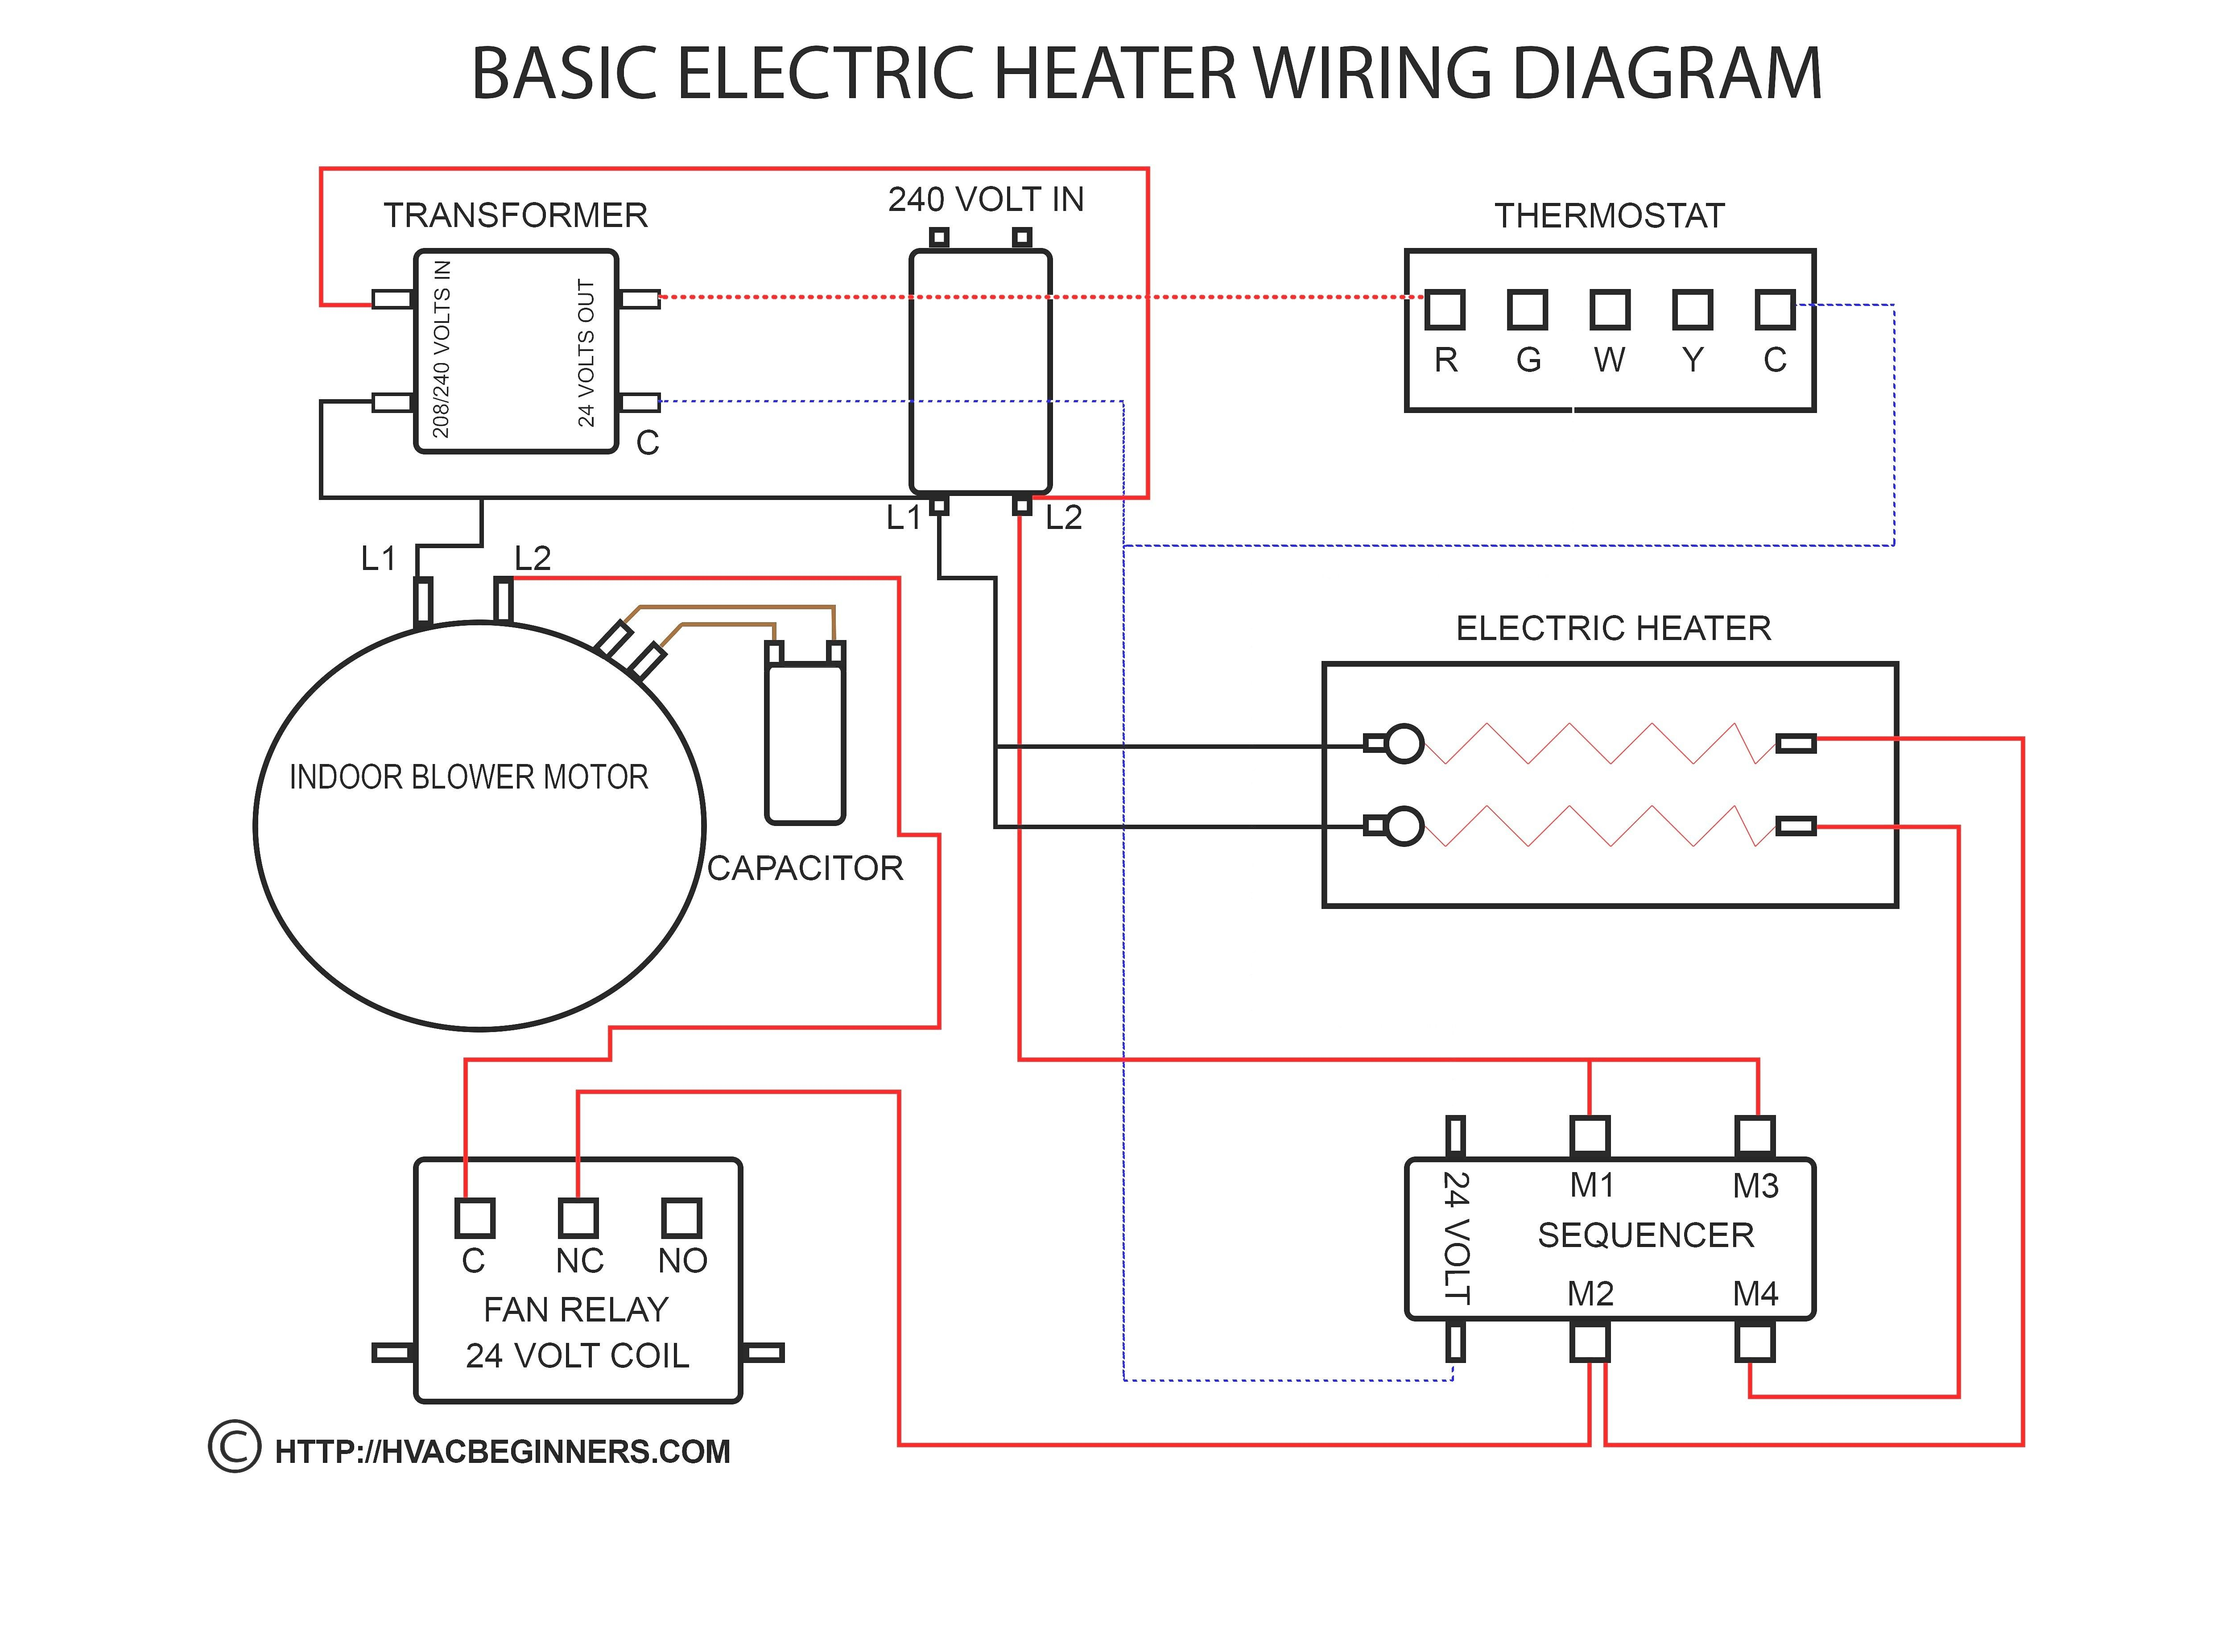 small resolution of unique wiring circuit diagram diagram wiringdiagram diagramming diagramm visuals visualisation graphical